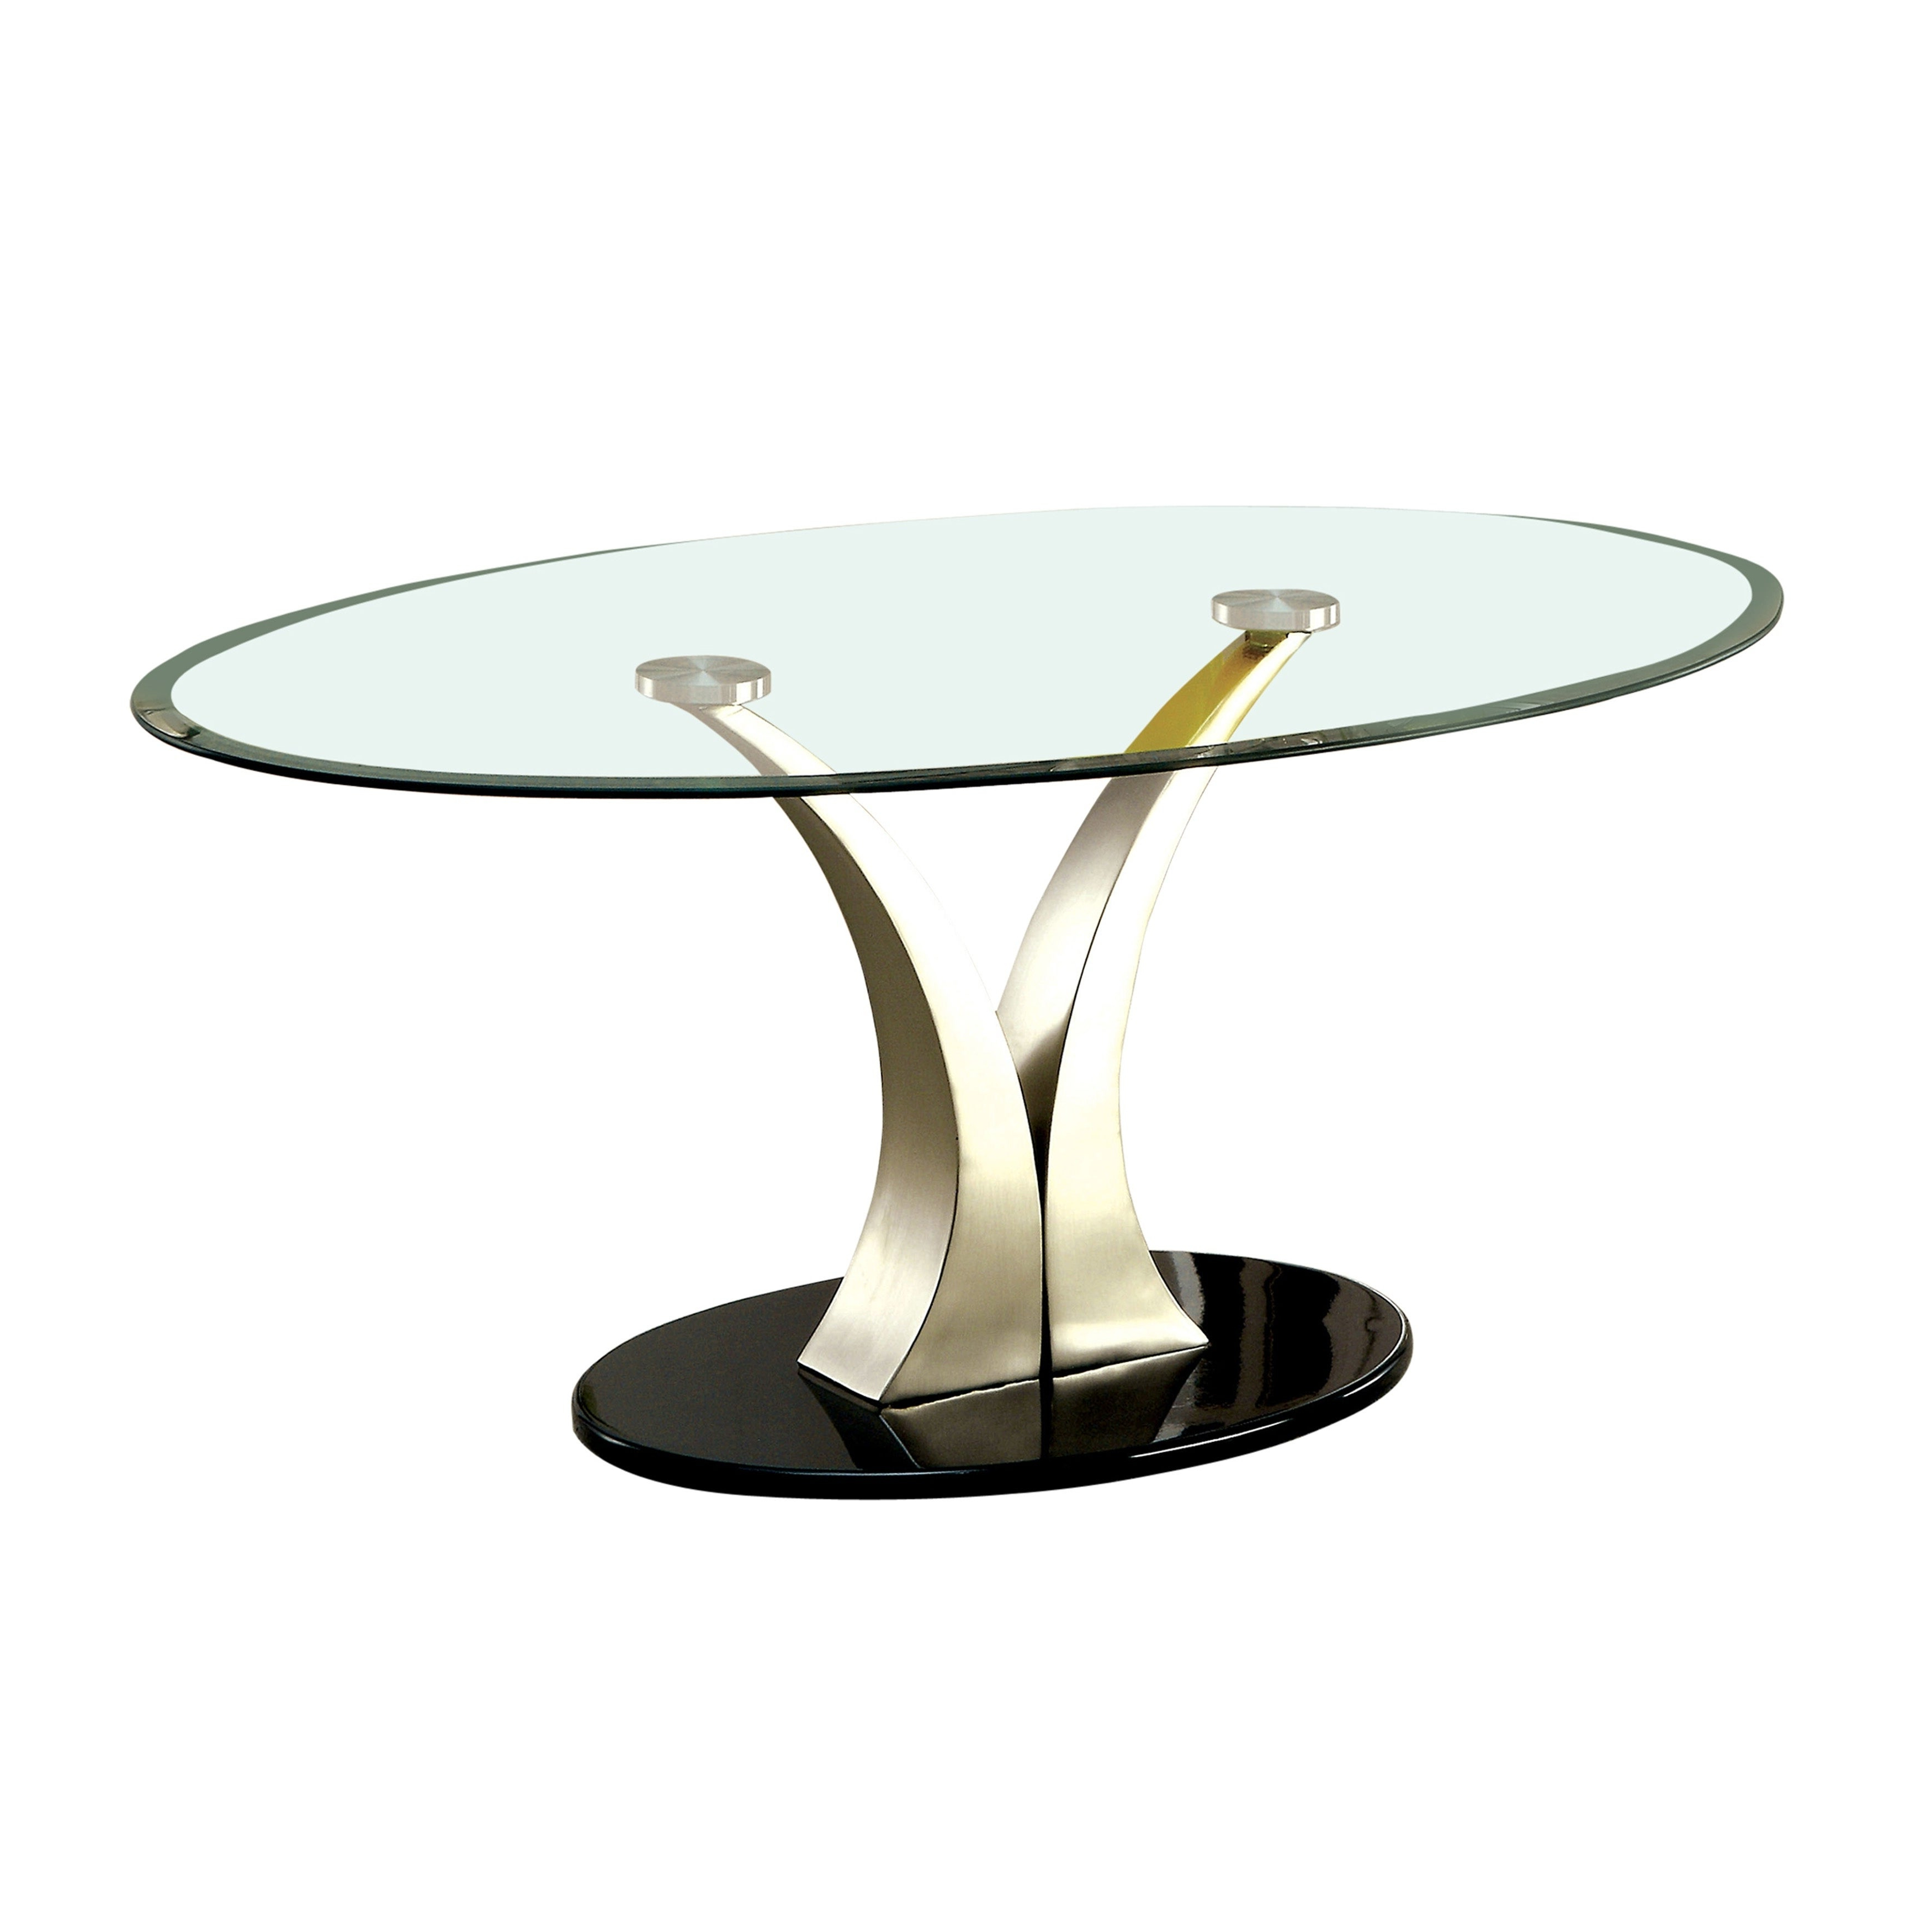 Velma Modern Satin Plated Coffee Tablefoa Within Most Recently Released Velma Modern Satin Plated Coffee Tables (View 18 of 20)